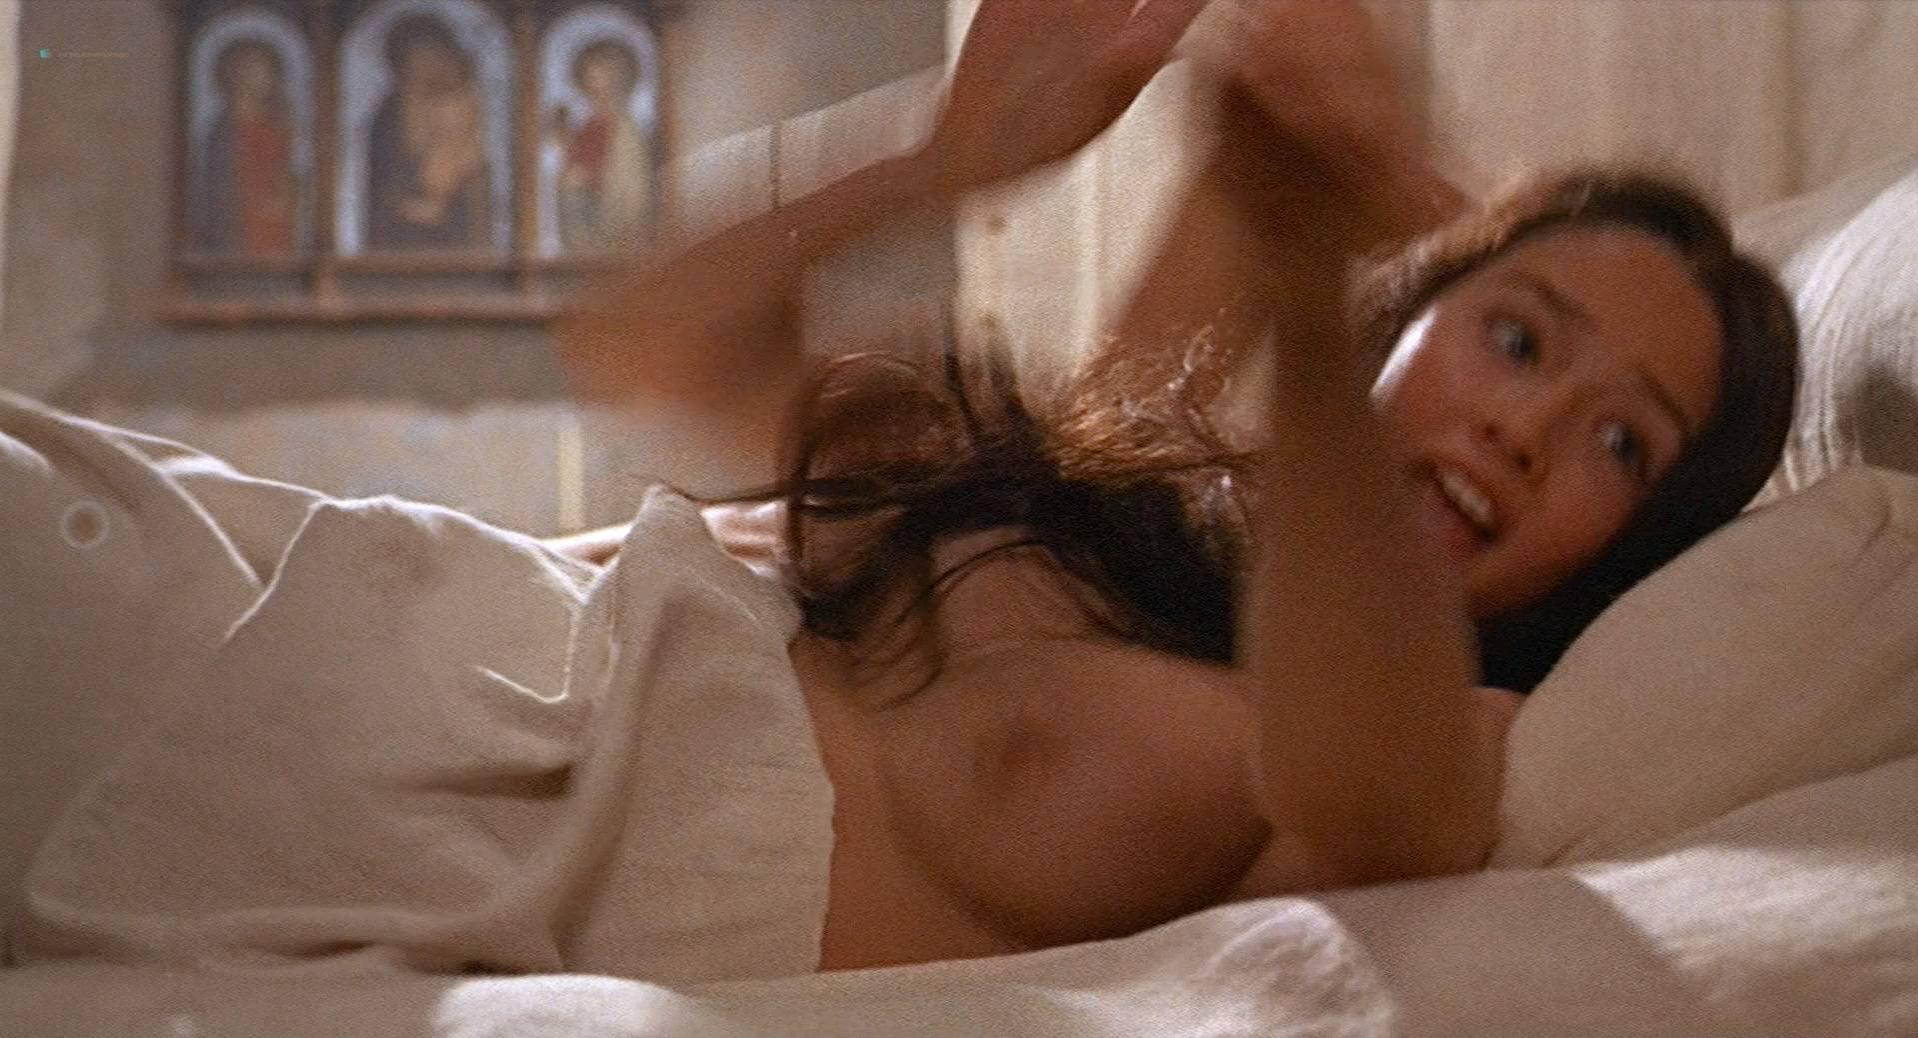 full frontal sex in movies